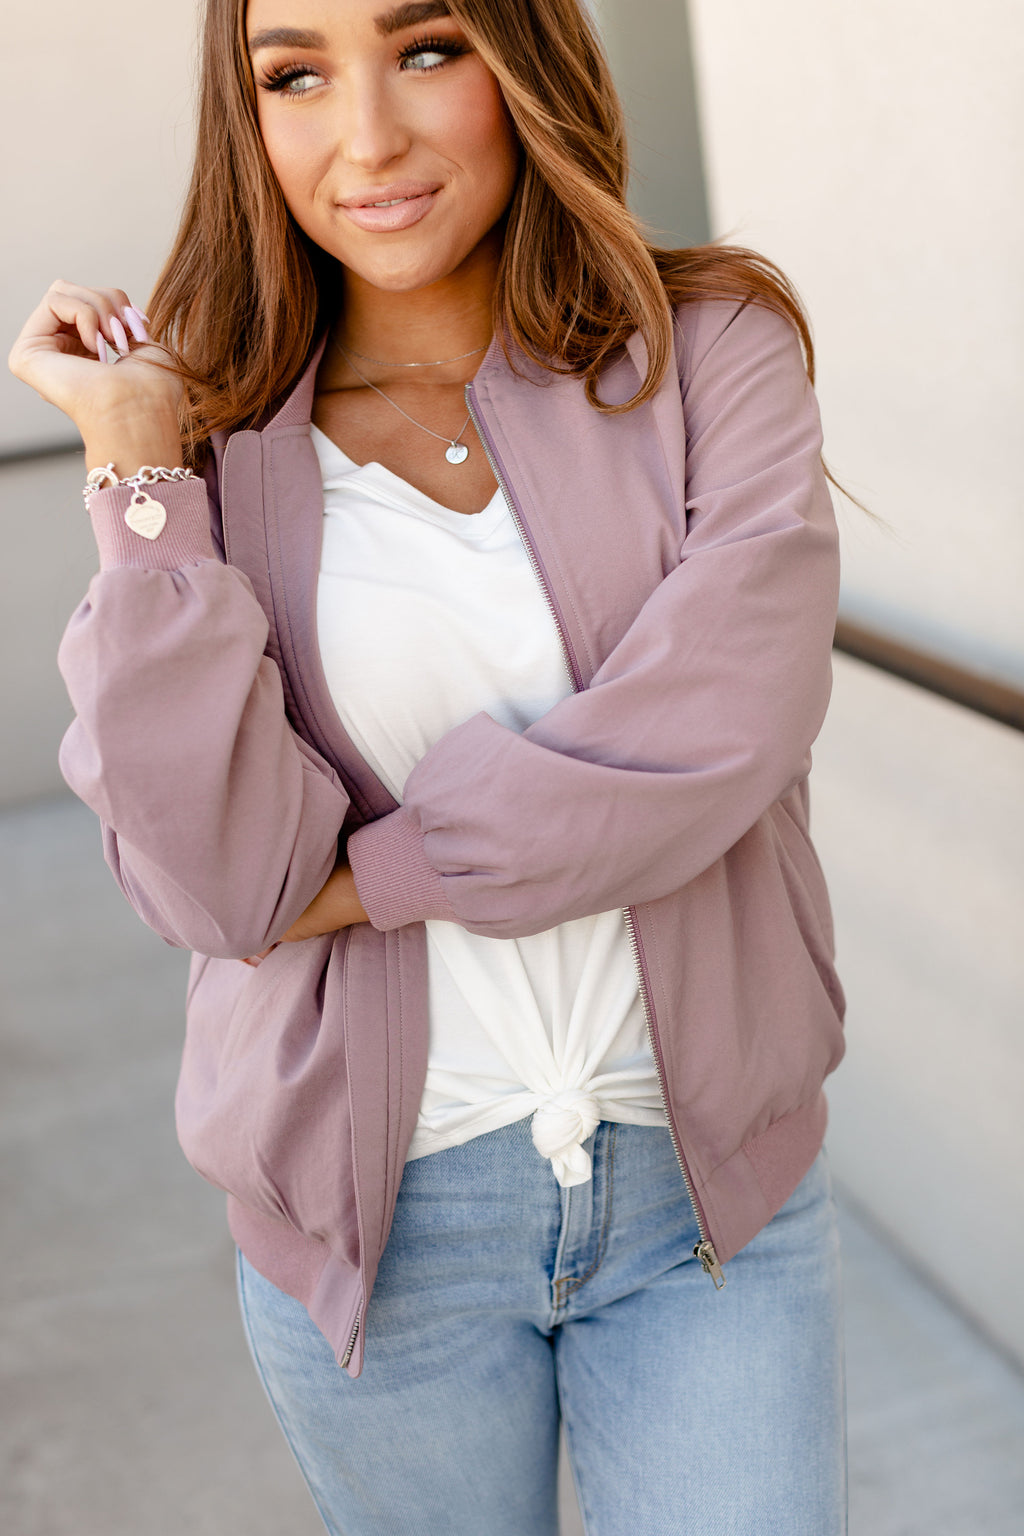 Ampersand Ave Night Out Bomber Jacket - Mauve